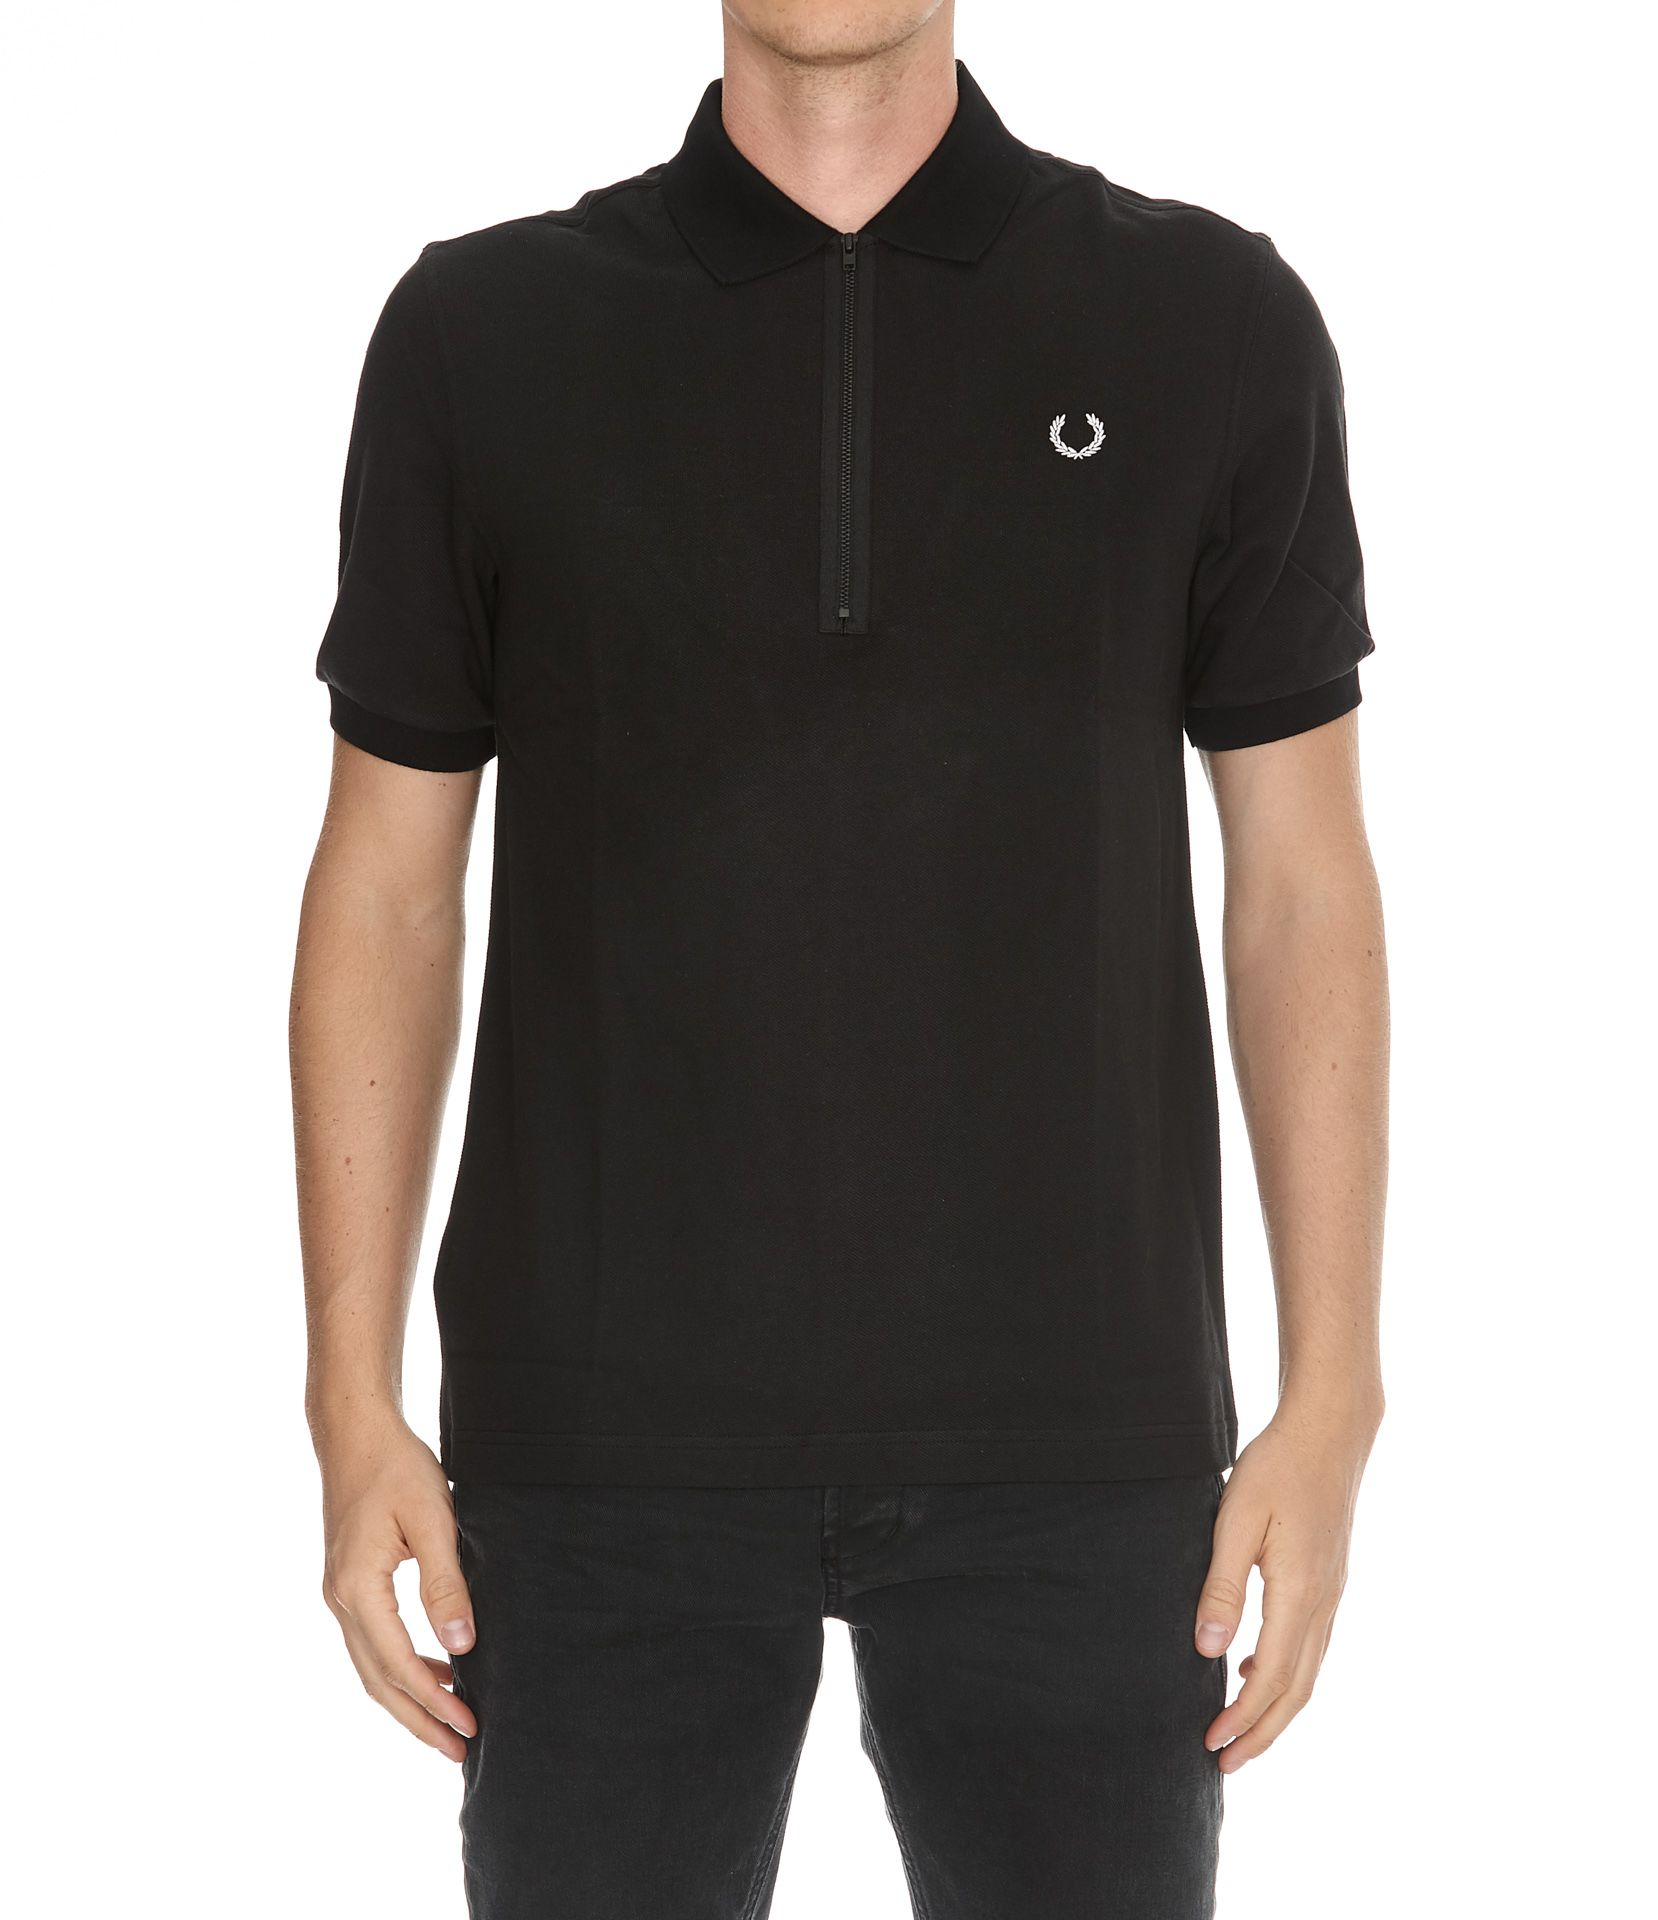 Fred Perry By Raf Simons Polo Tshirt